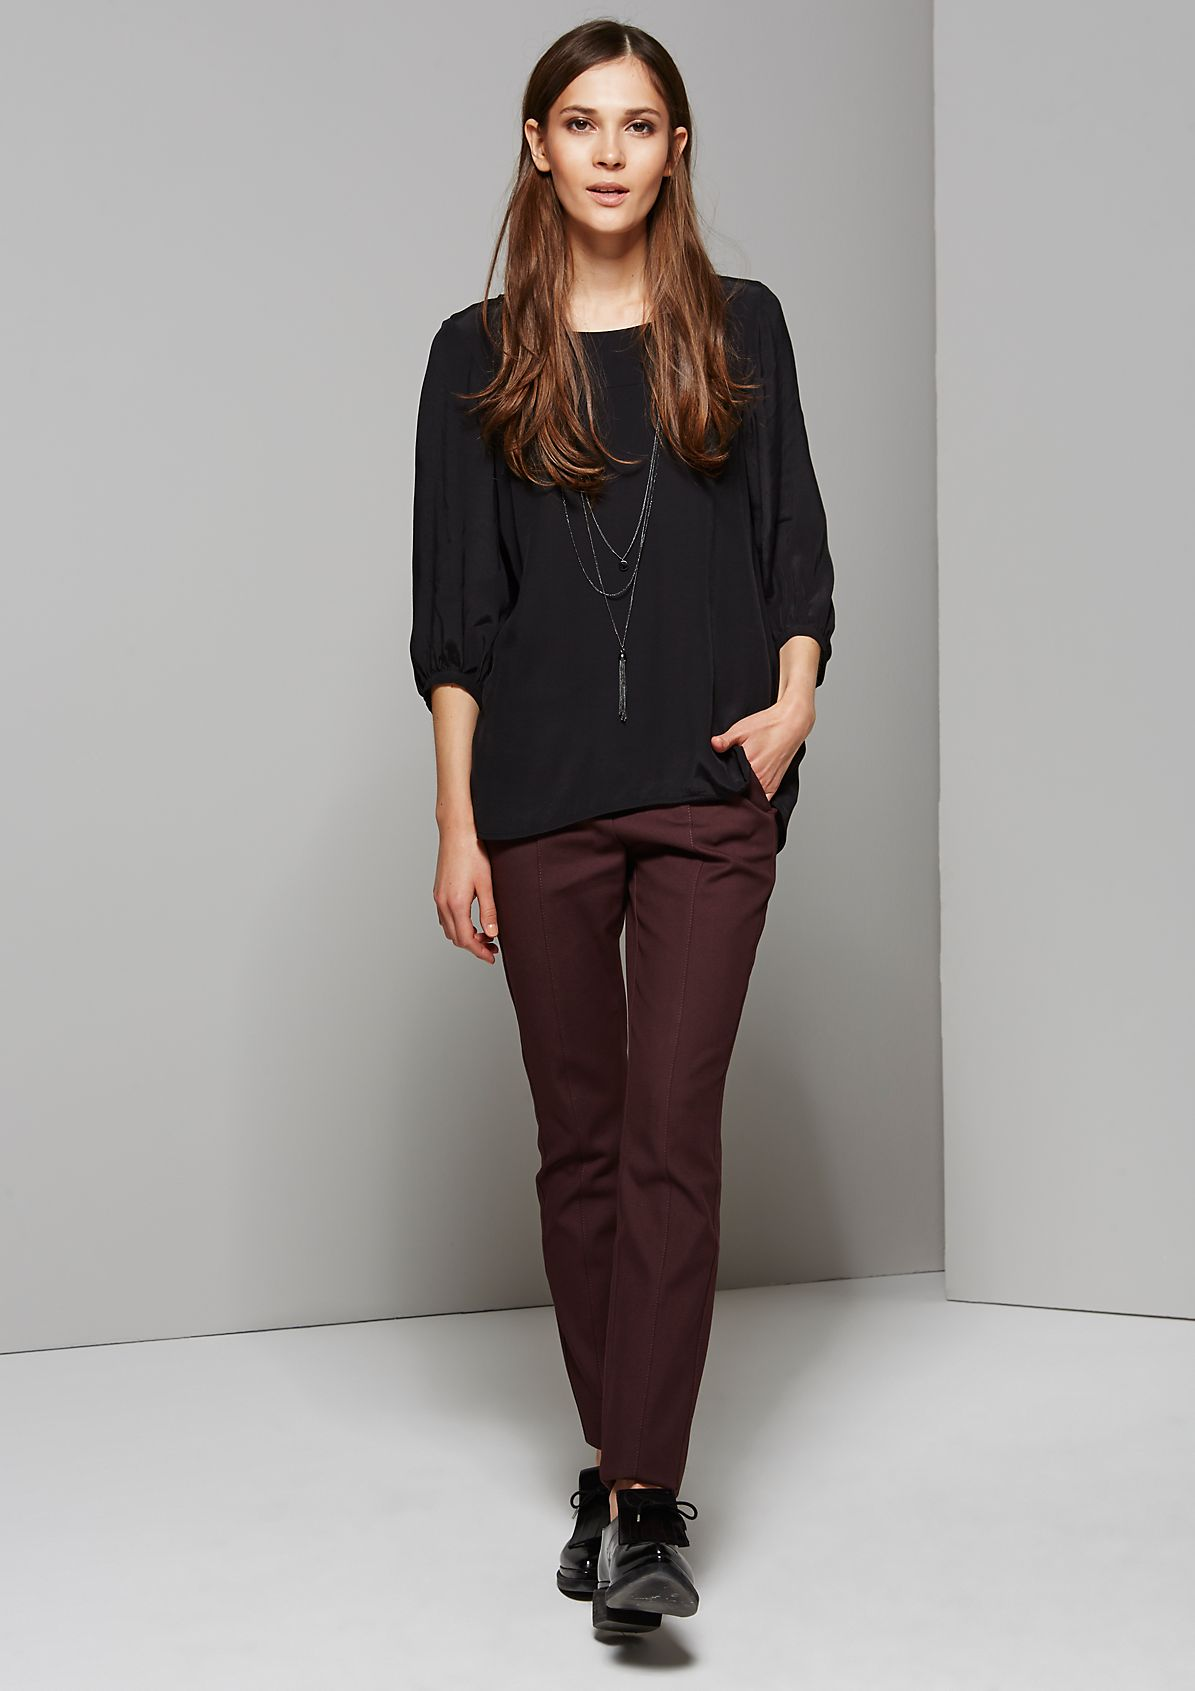 Pretty twill trousers with beautiful details from s.Oliver